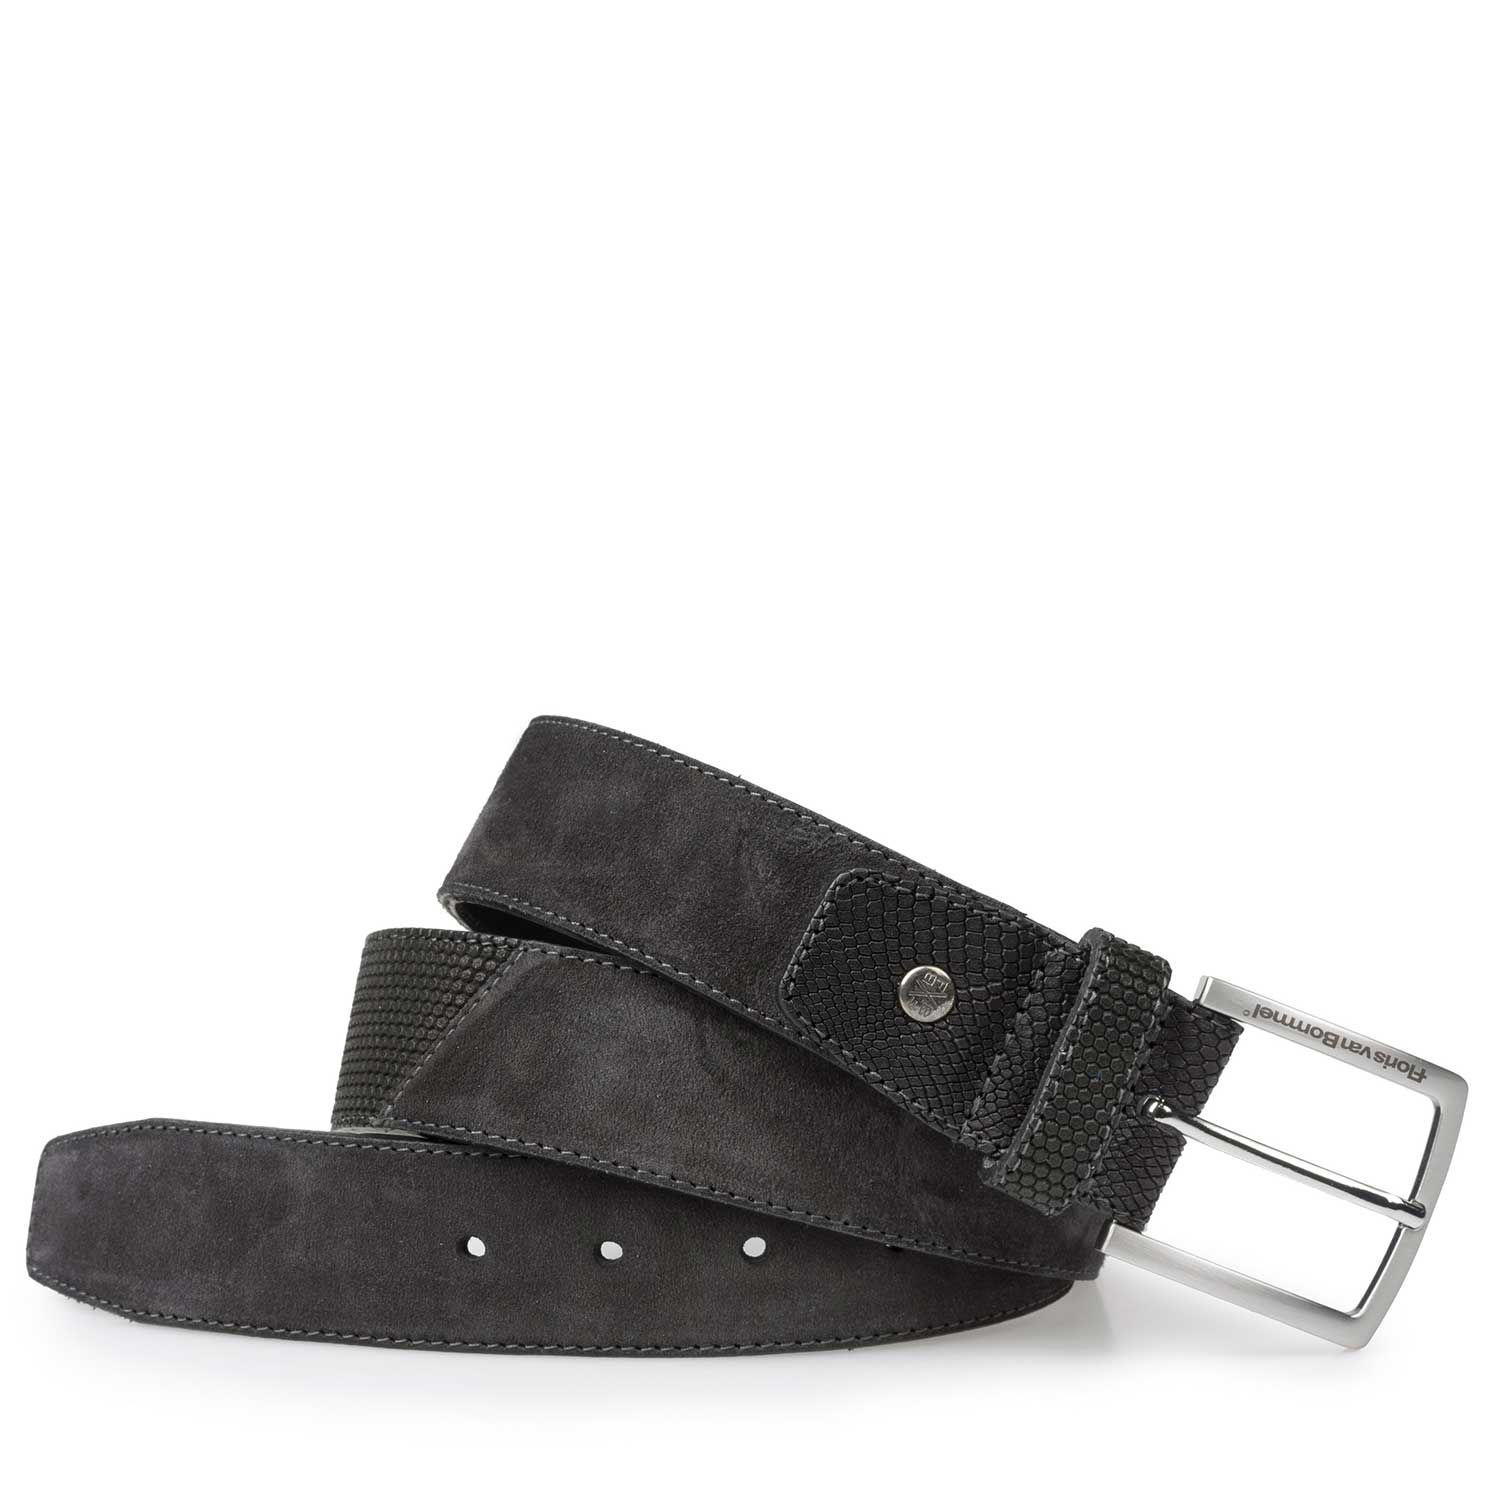 75161/16 - Grey calf's suede leather belt